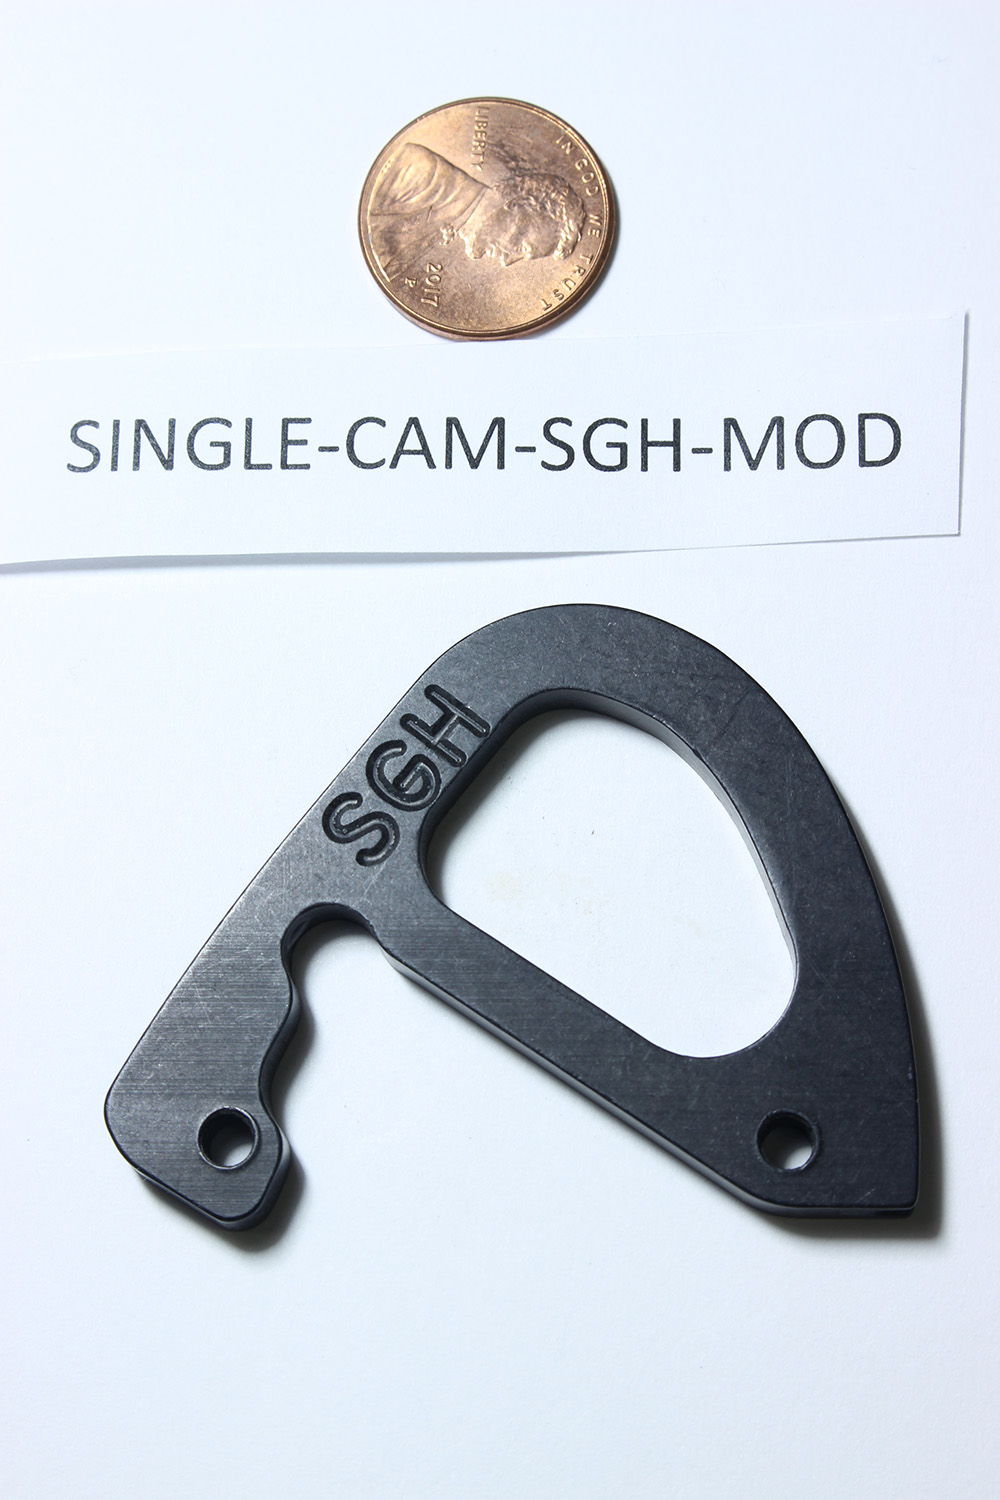 older single cam compound bow draw length module photo for parker, bear, golden eagle, ben pearson, multiple brands